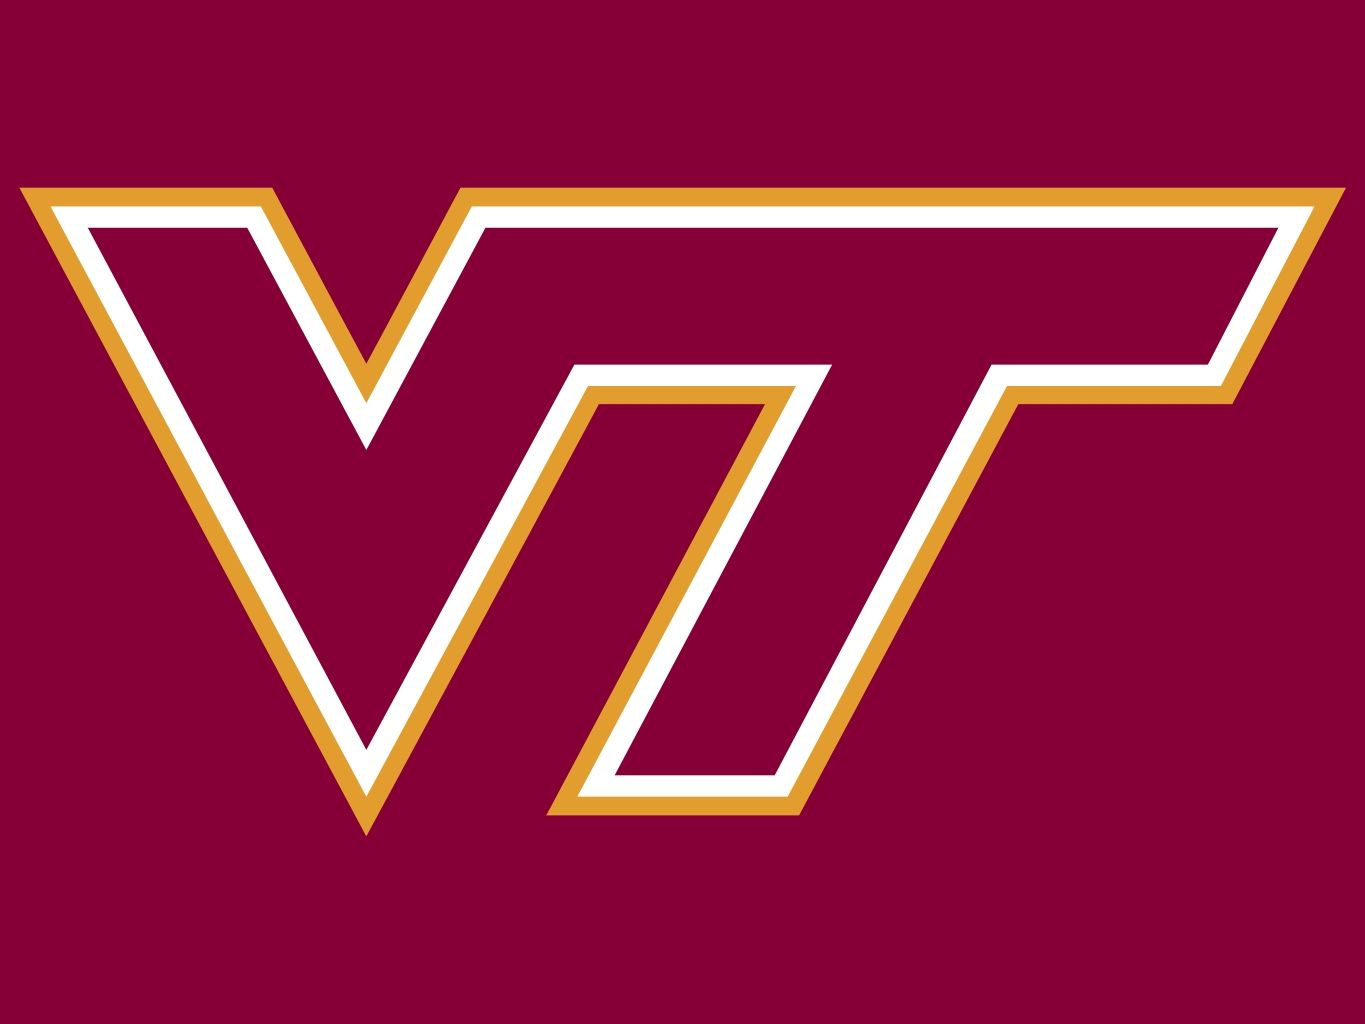 Virginia Tech. Virginia Polytechnic Institute and State